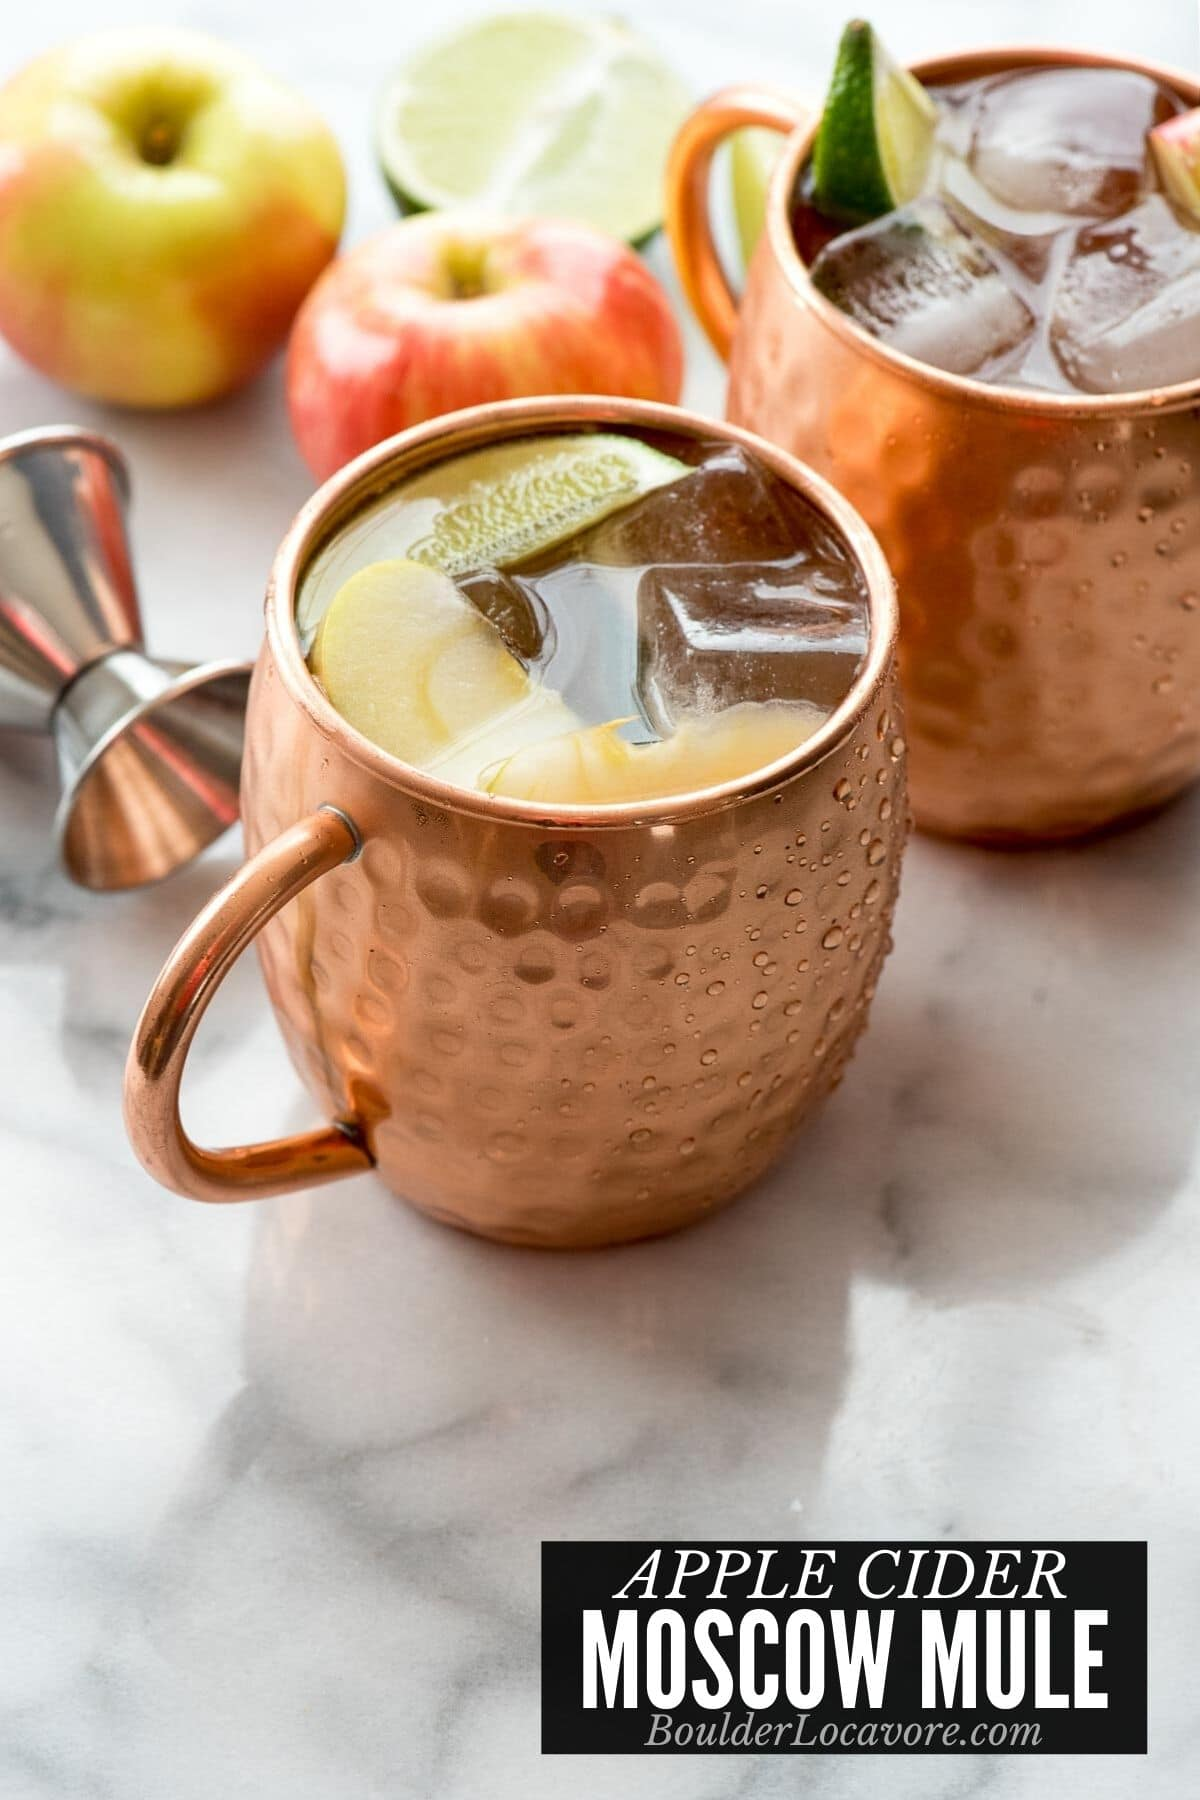 apple cider moscow mule title